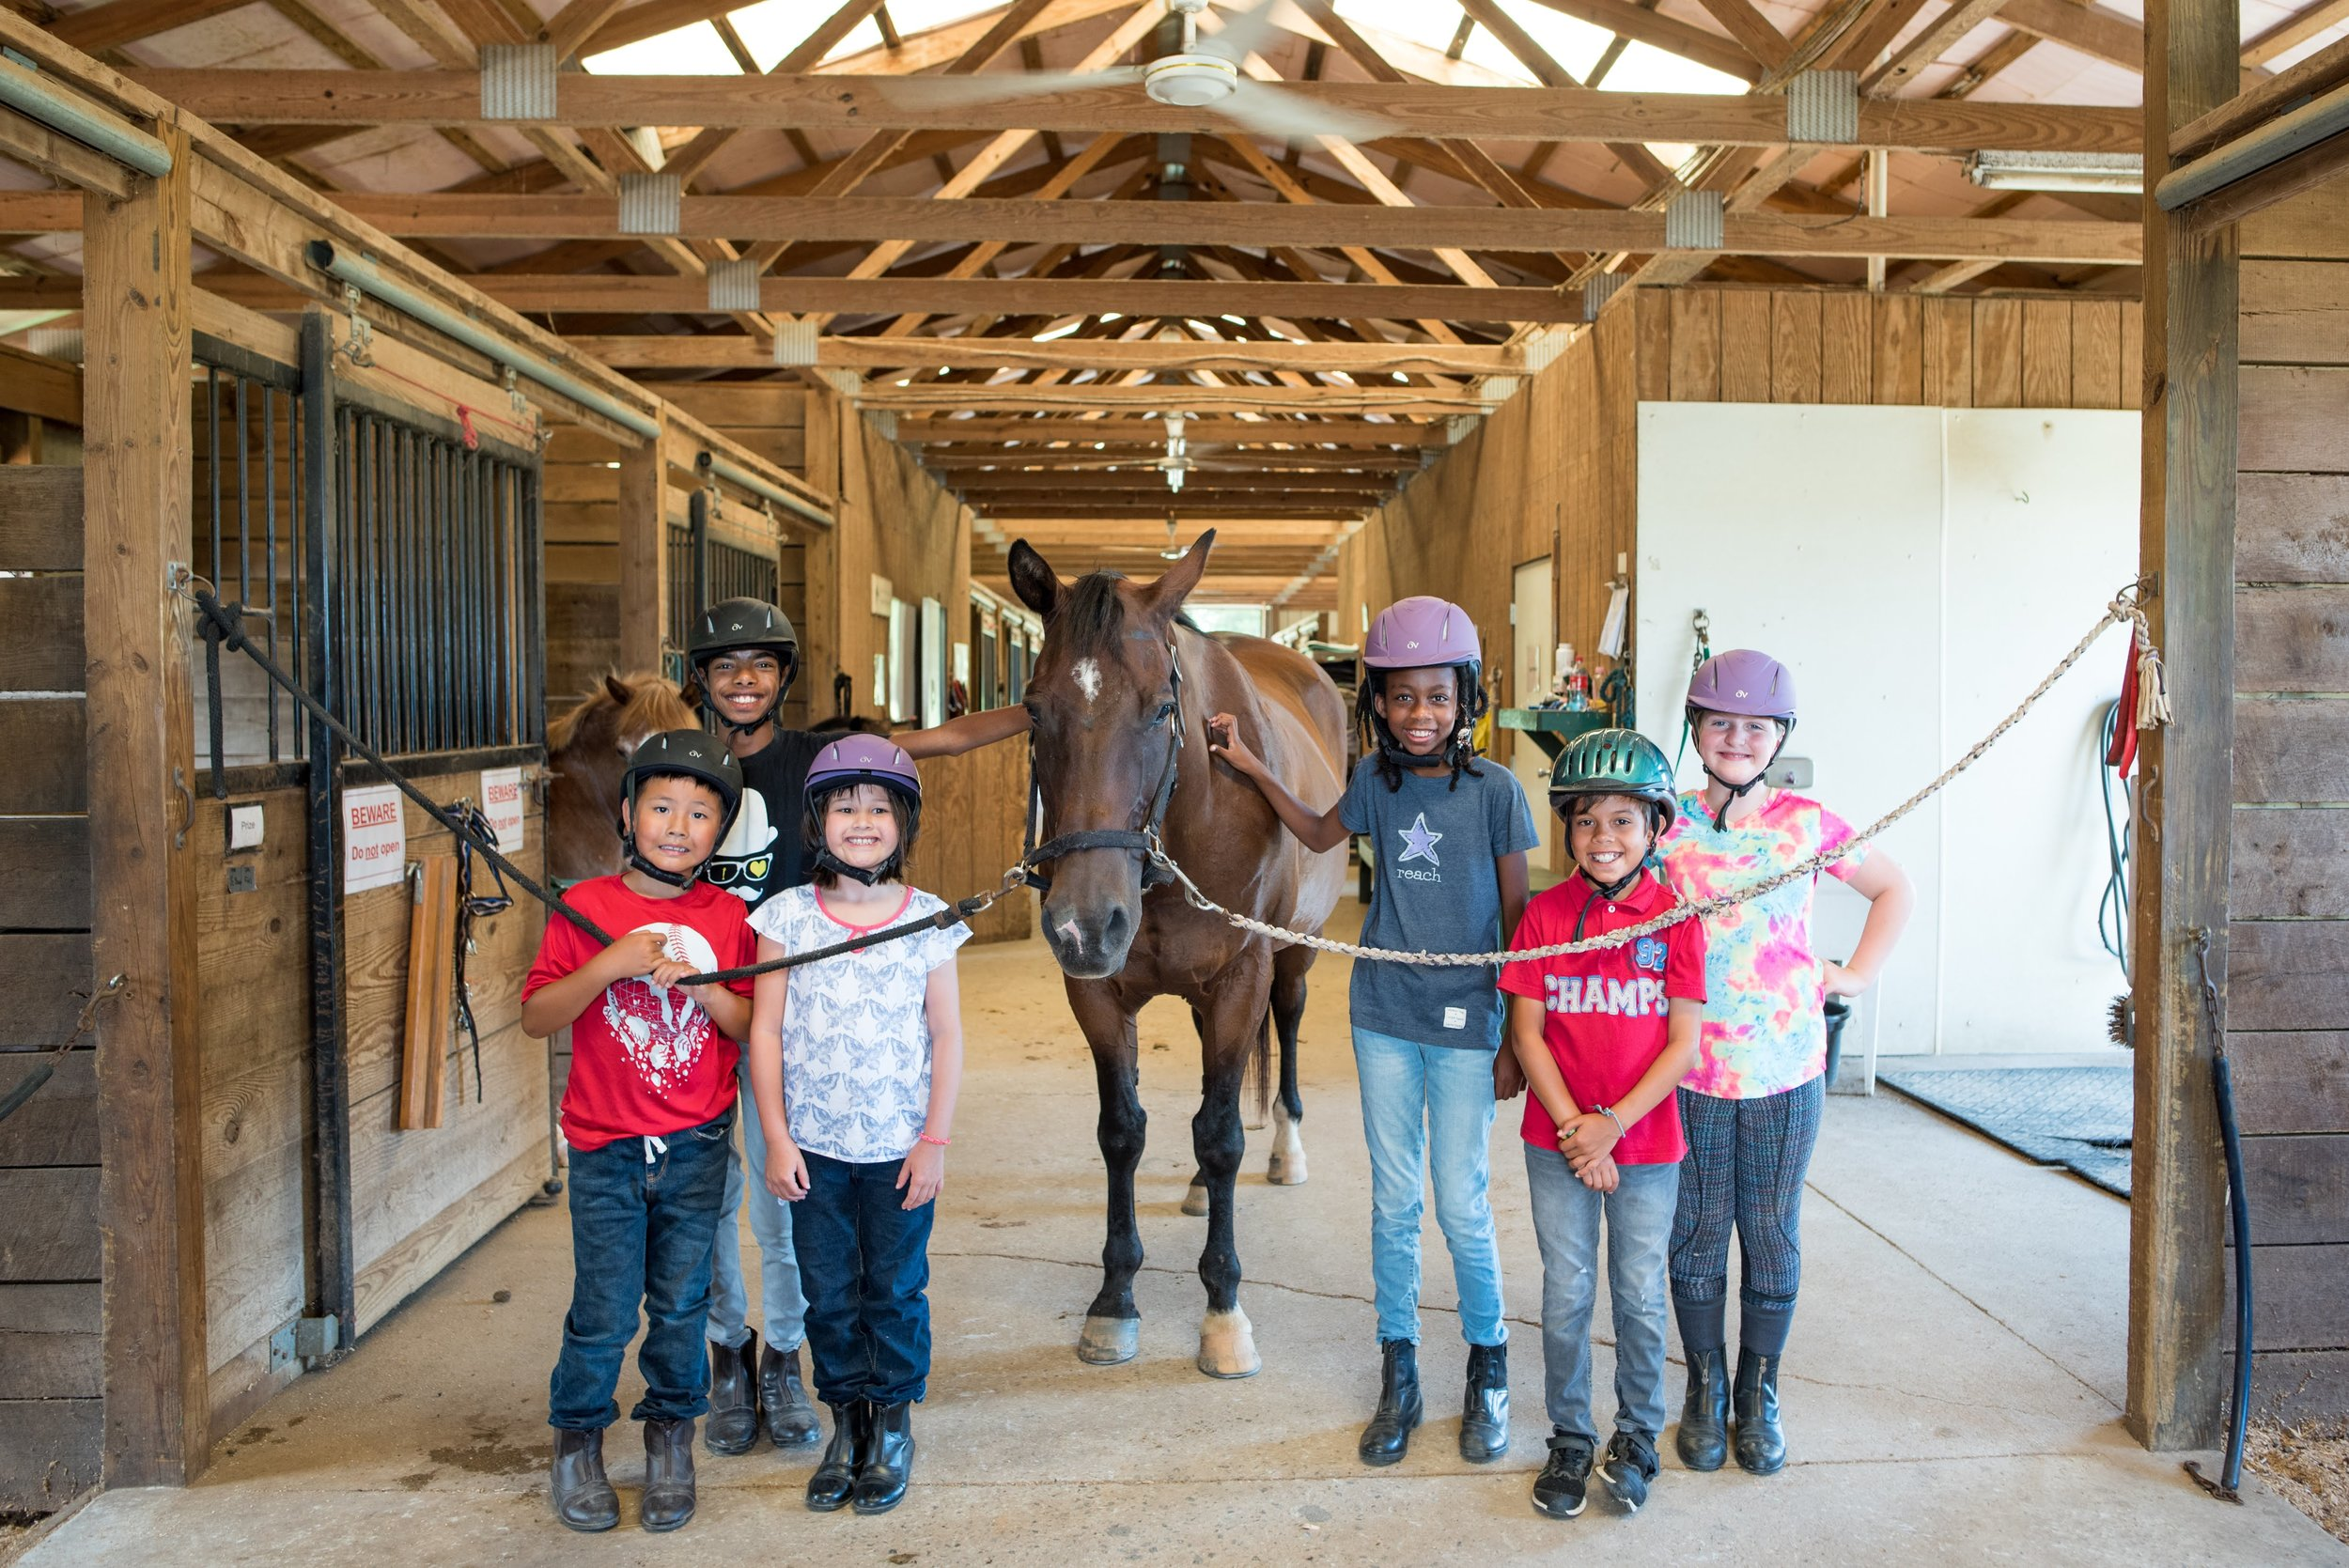 The students in riding gear smile beside one of Oakland's kind horses.